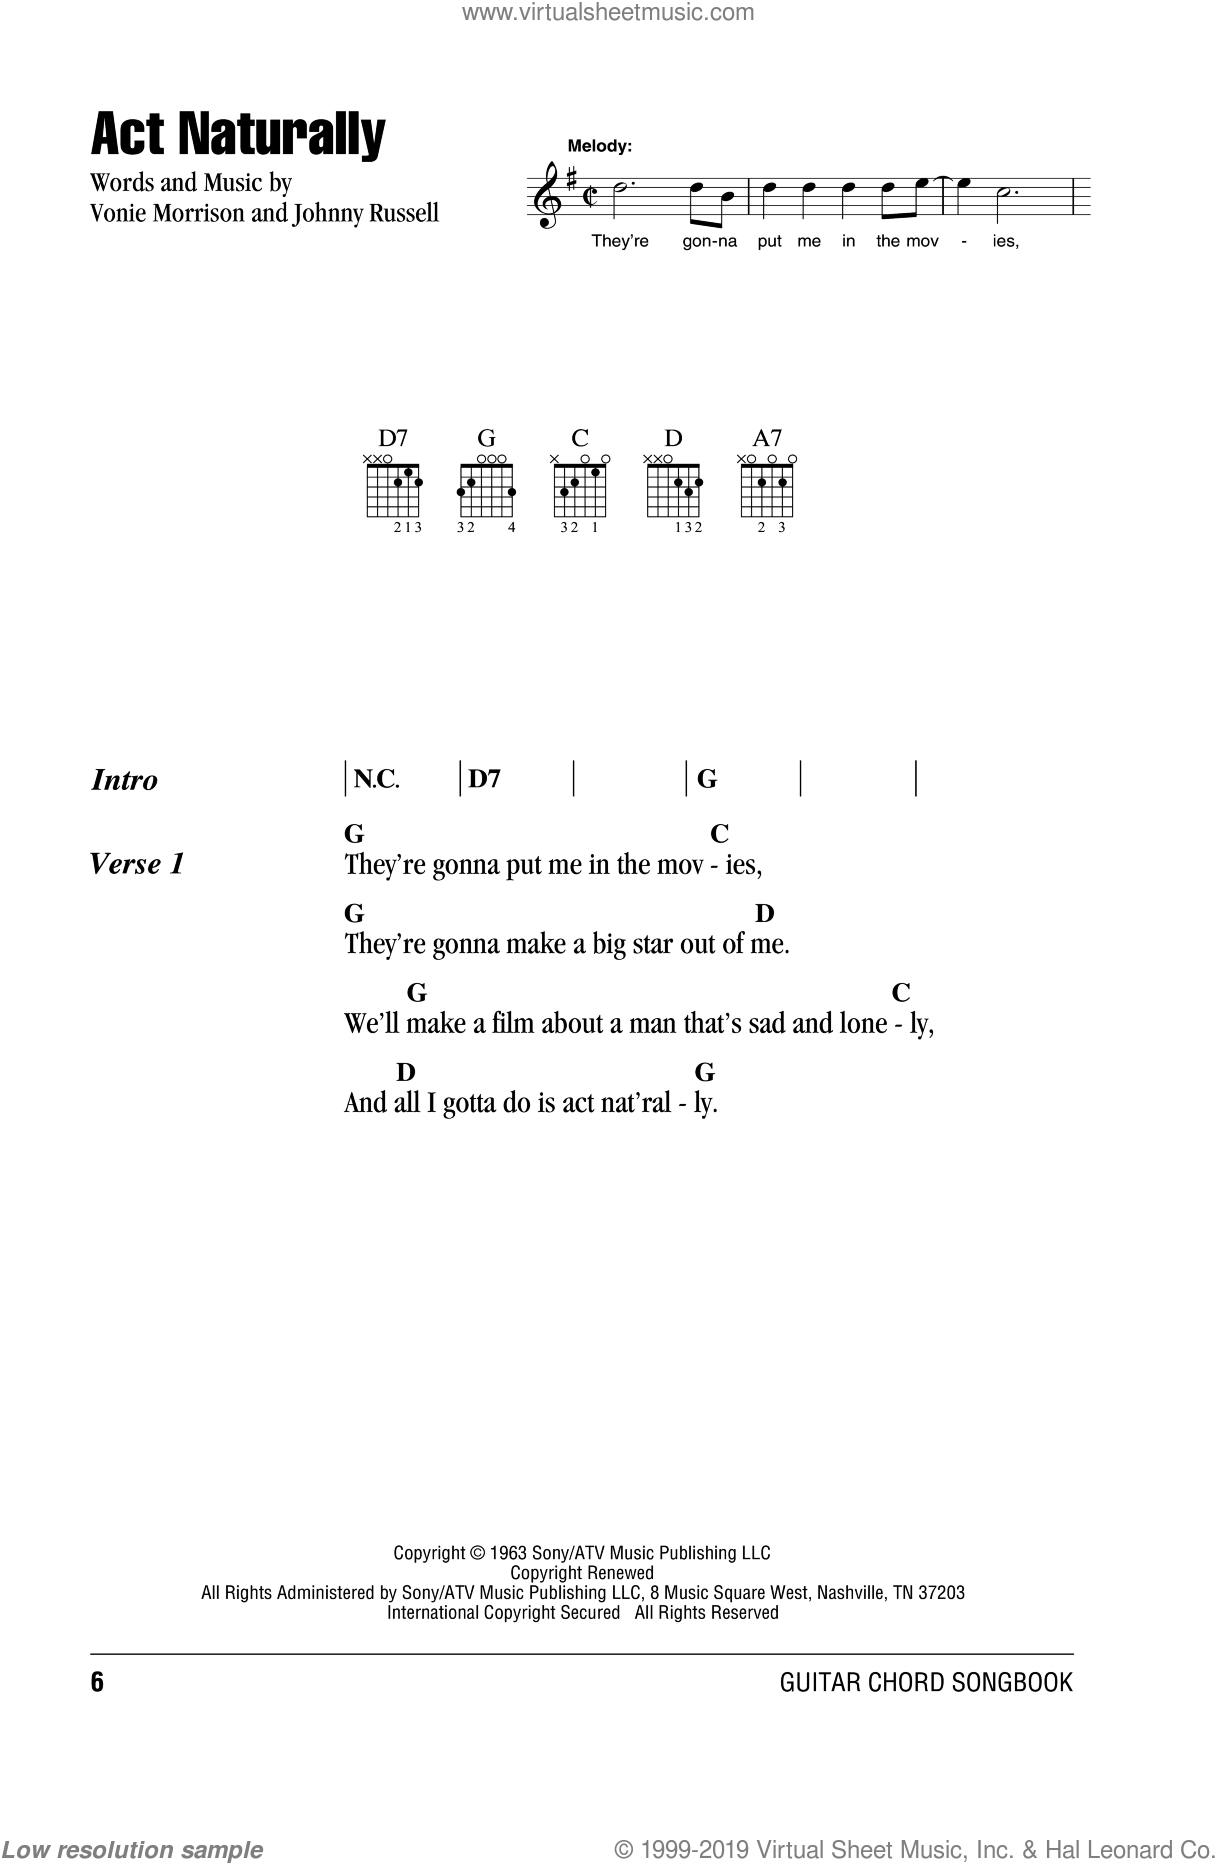 Act Naturally sheet music for guitar (chords) by Buck Owens, The Beatles, Johnny Russell and Vonie Morrison, intermediate skill level